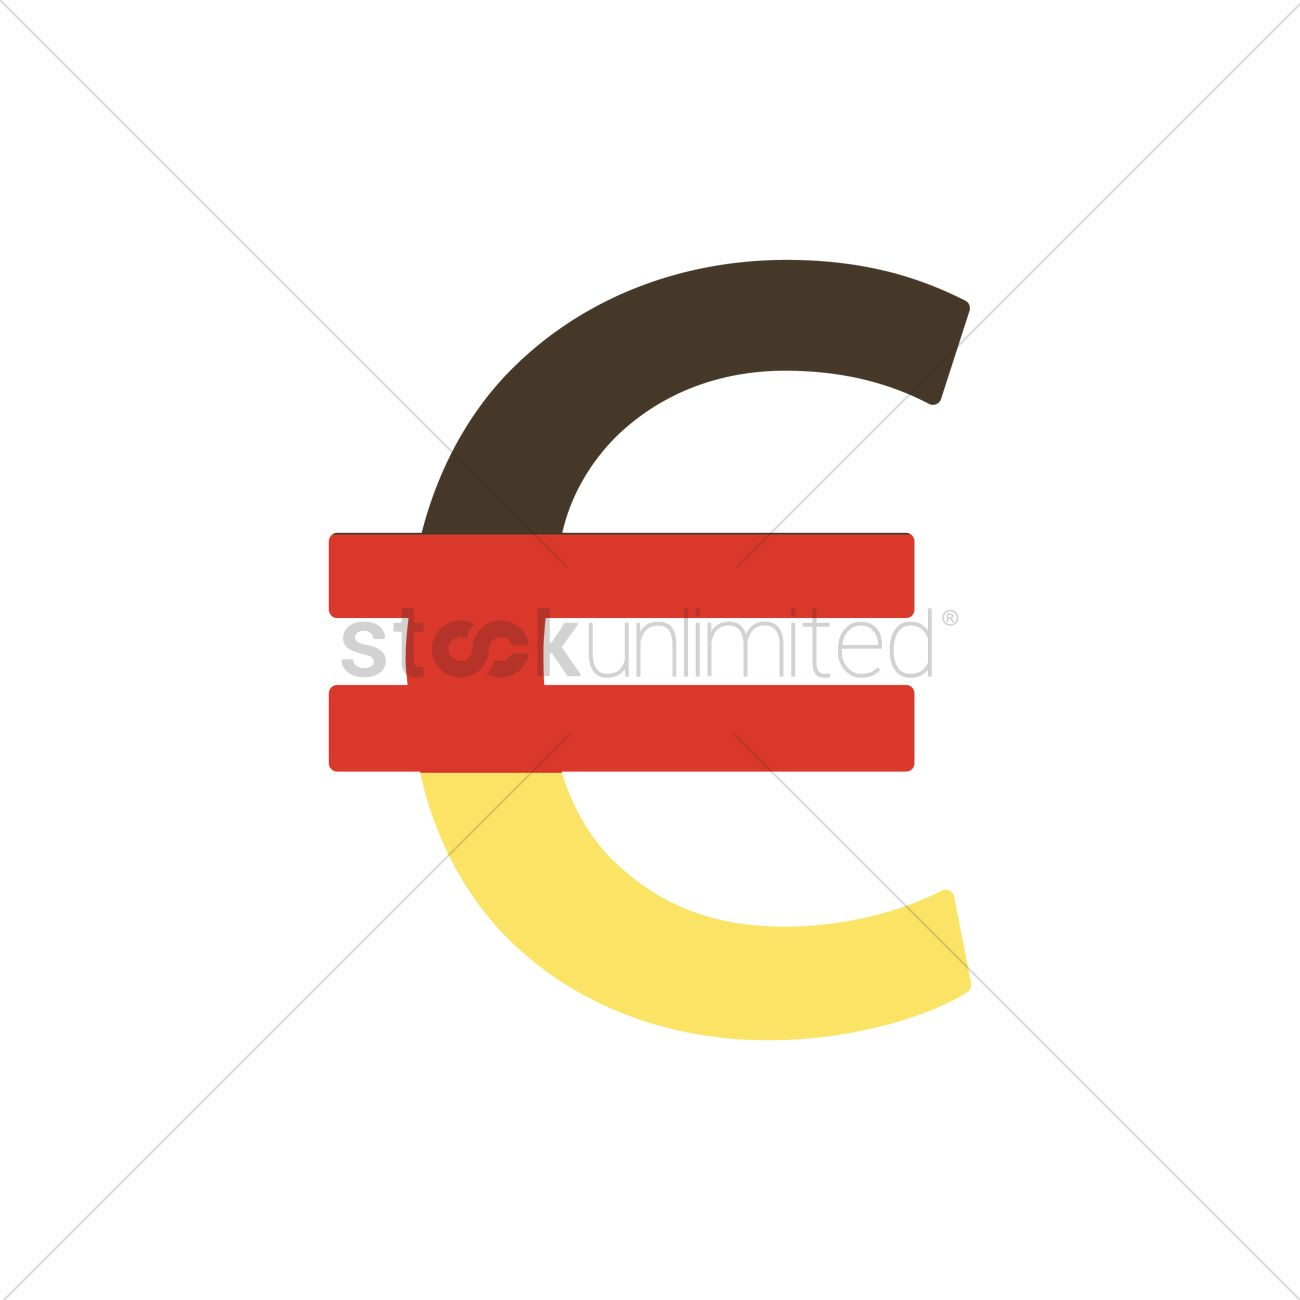 Euro Currency Symbol Vector Image 1953141 Stockunlimited